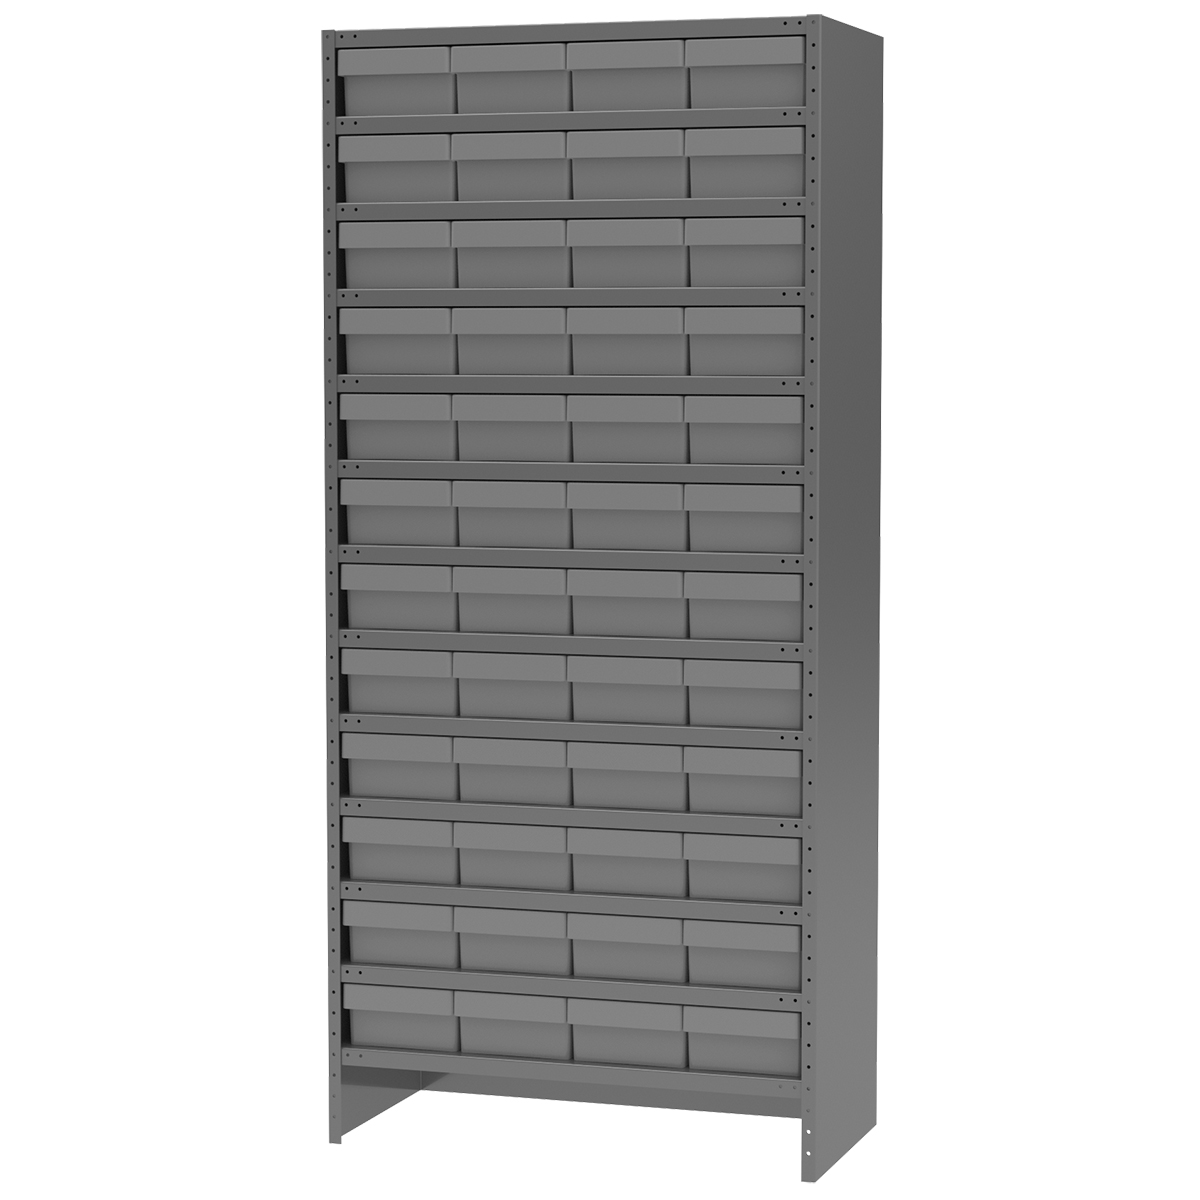 Enclosed Steel Shelving Kit, 18x36x79, 48 AkroDrawers, Gray/Gray.  This item sold in carton quantities of 1.